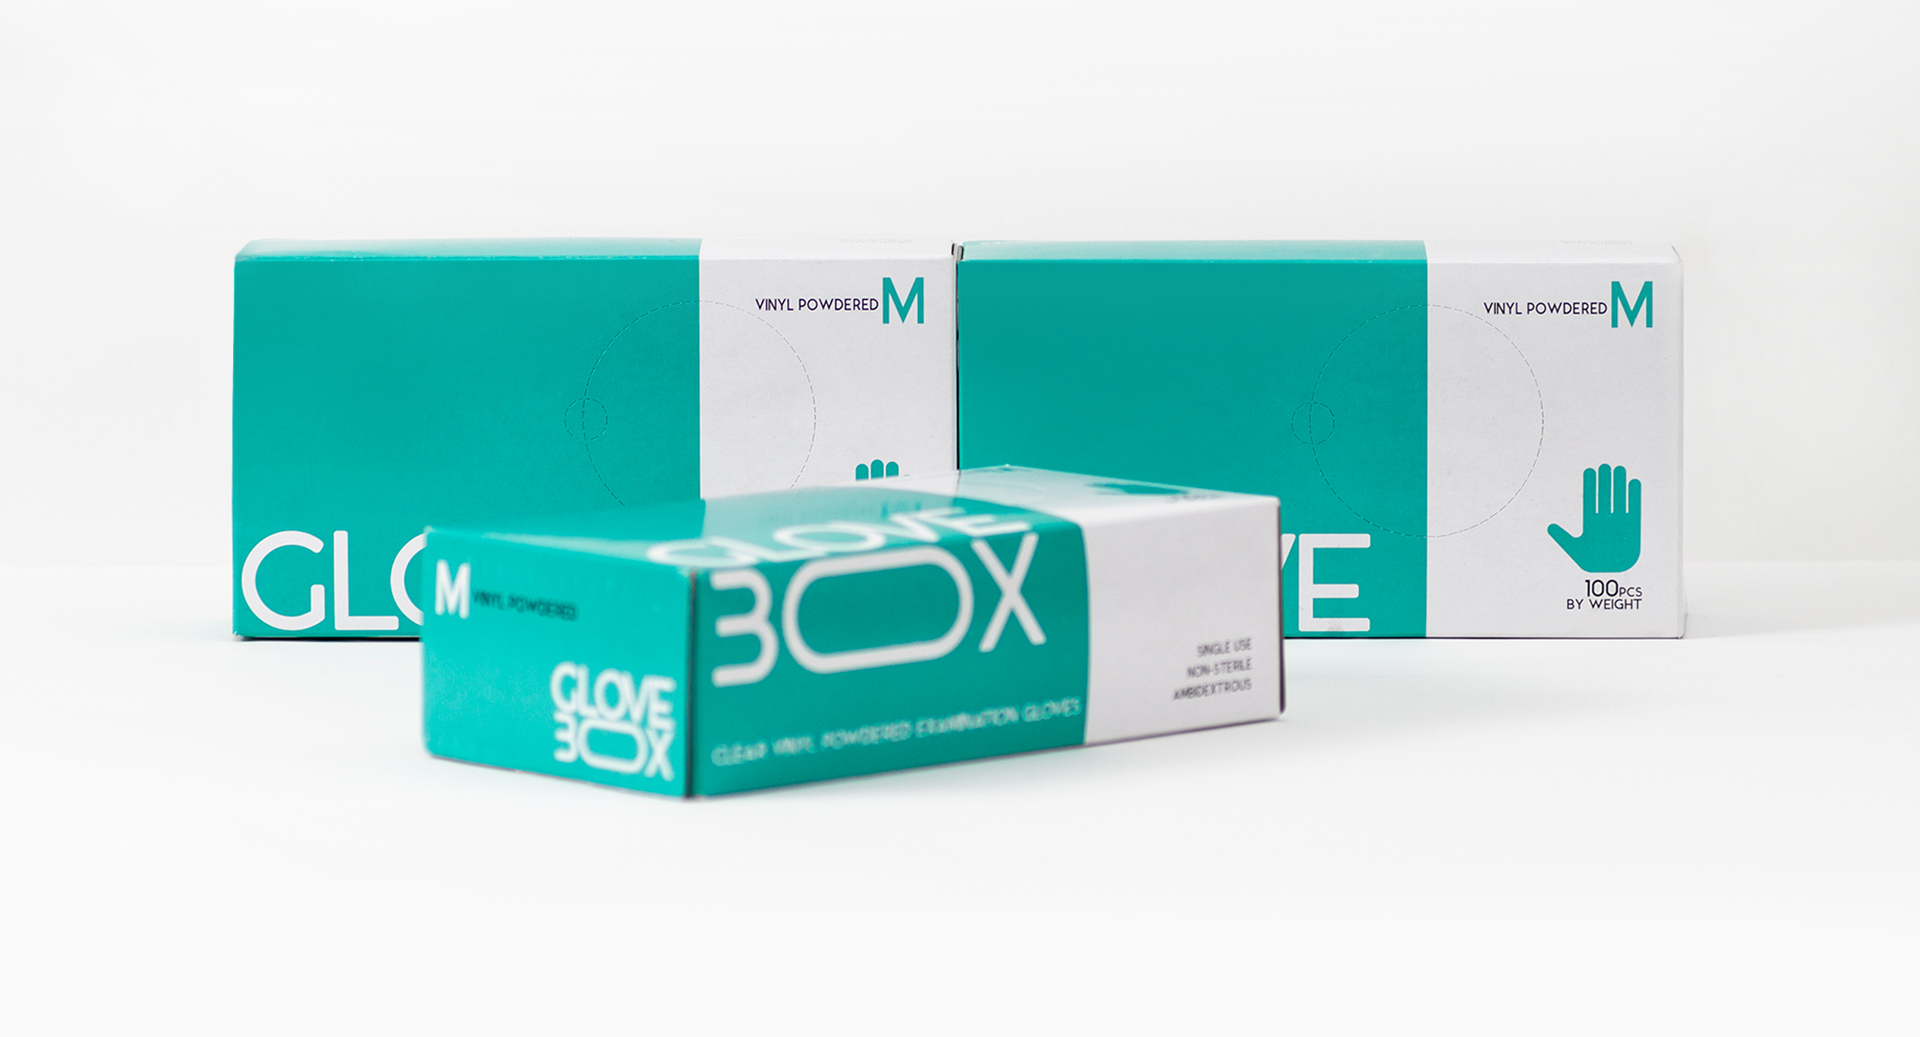 Packaging Design for Glove Box Created by Sowl Creative Studio